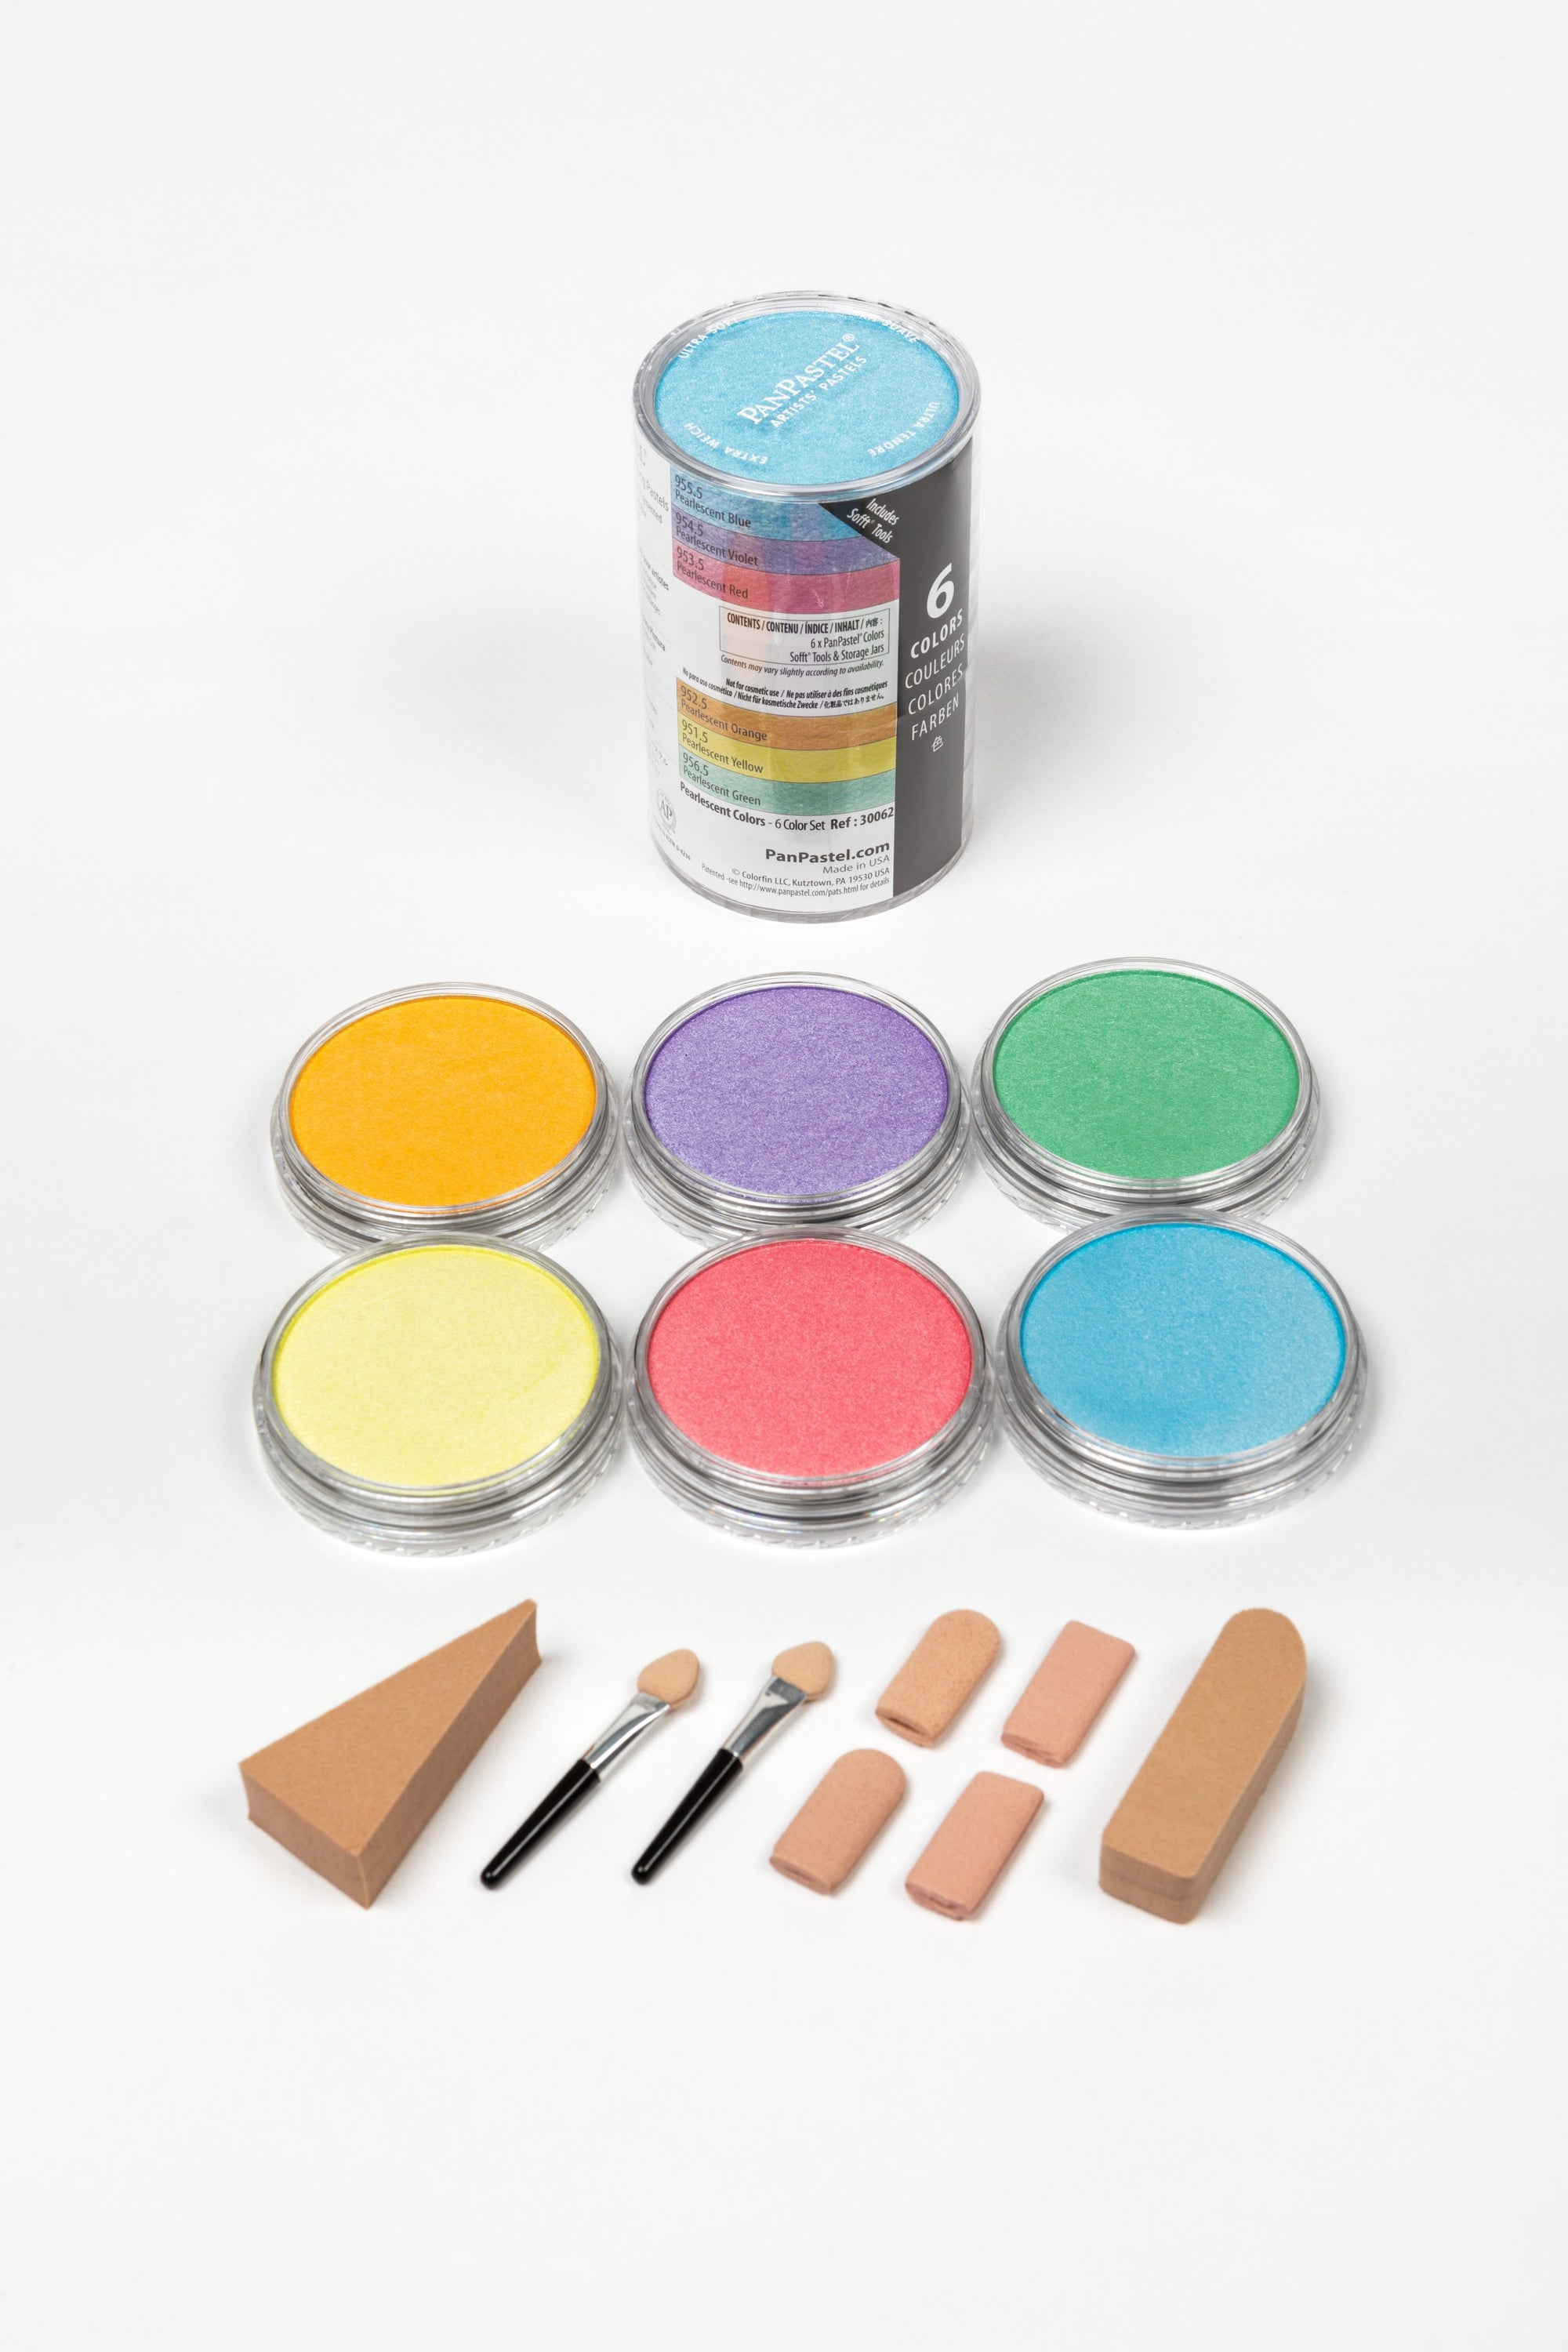 PanPastel - 30062 PEARLESCENT 6 COLOUR SET